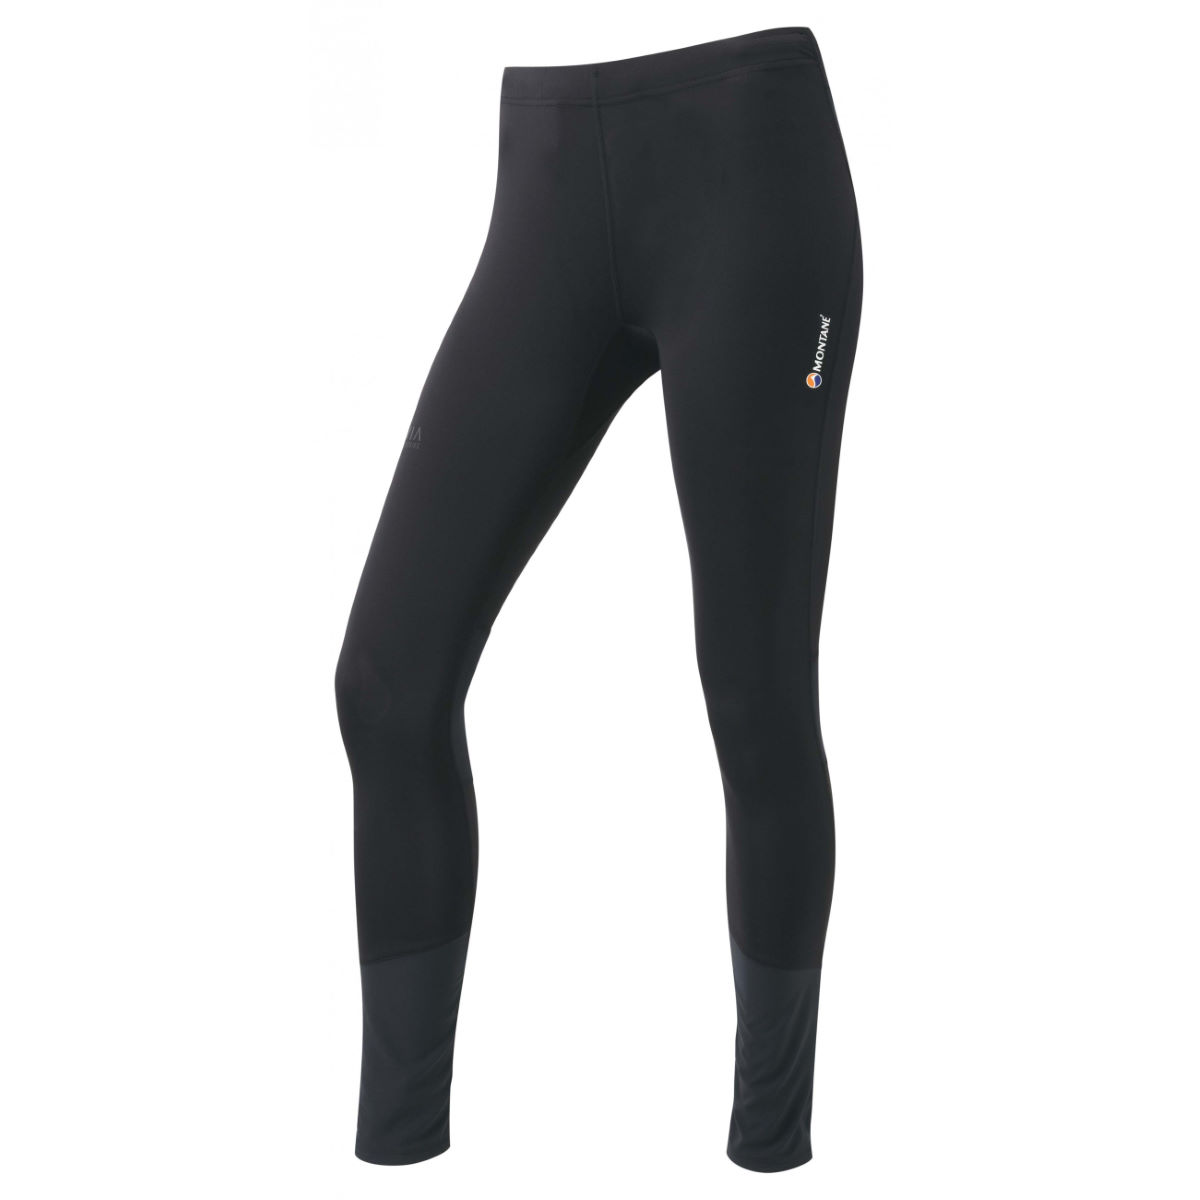 Collant long Femme Montane Trail Series (AH16) - XL Noir Collants